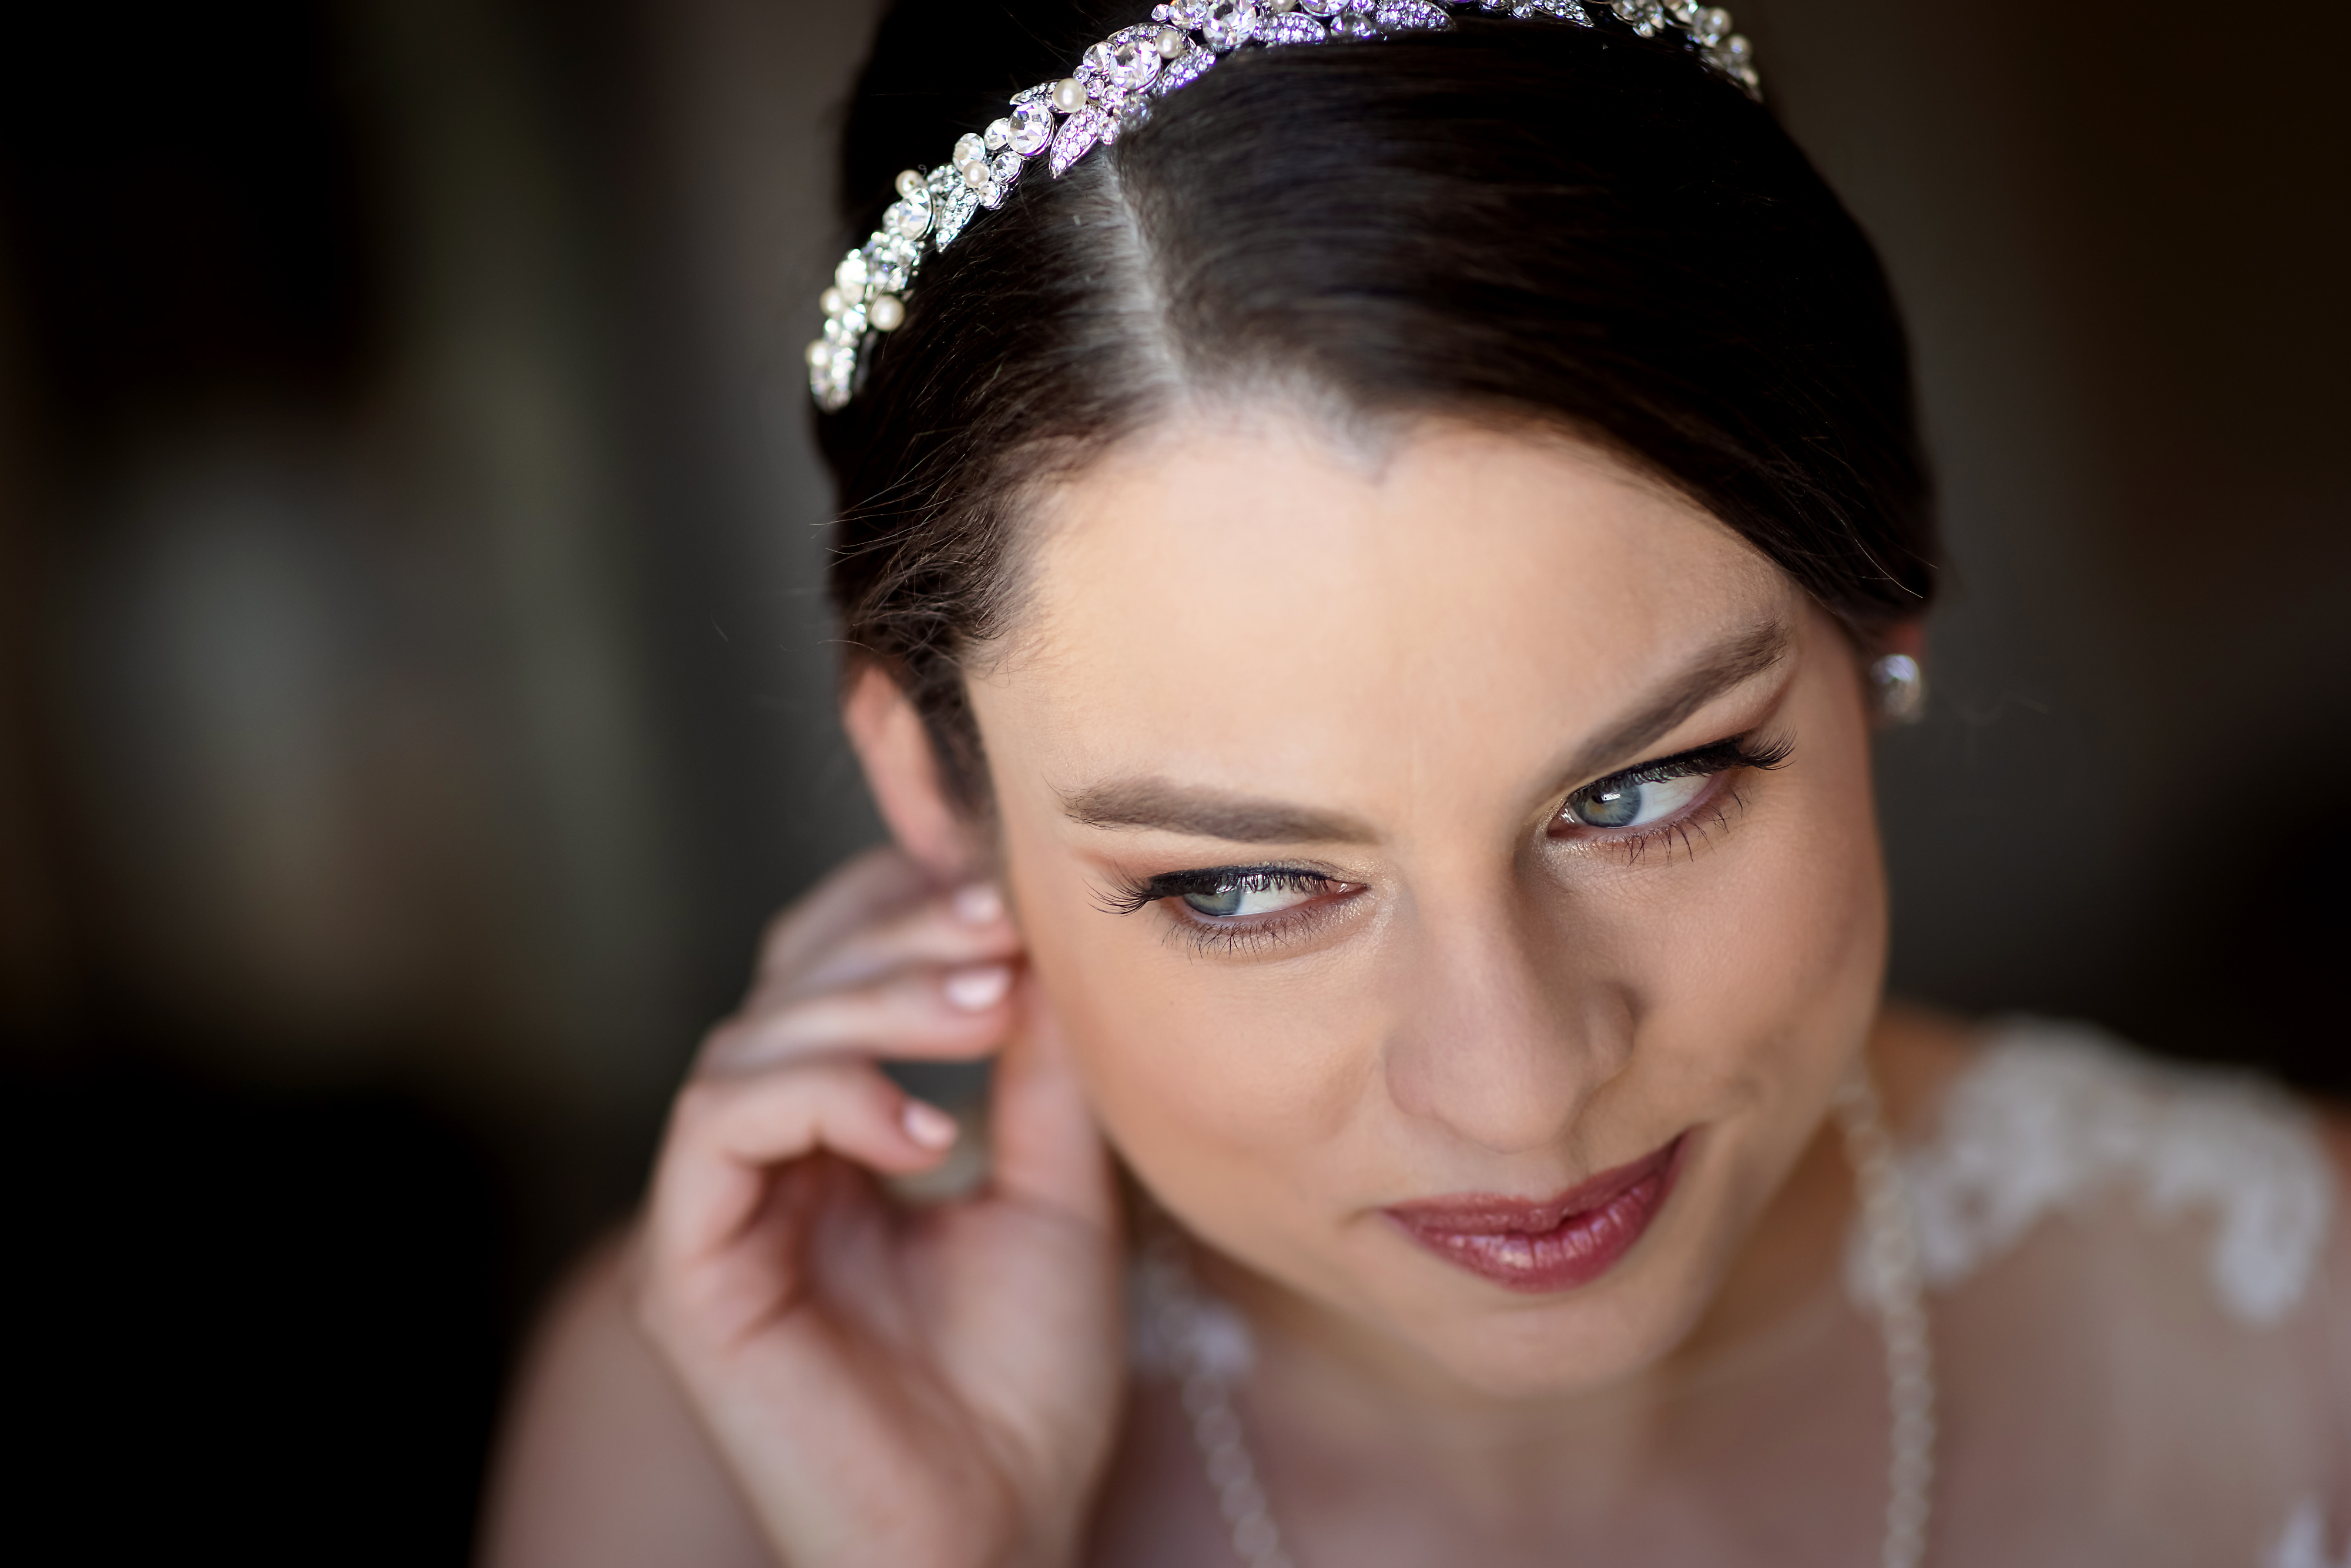 Bride smiles while putting on earring